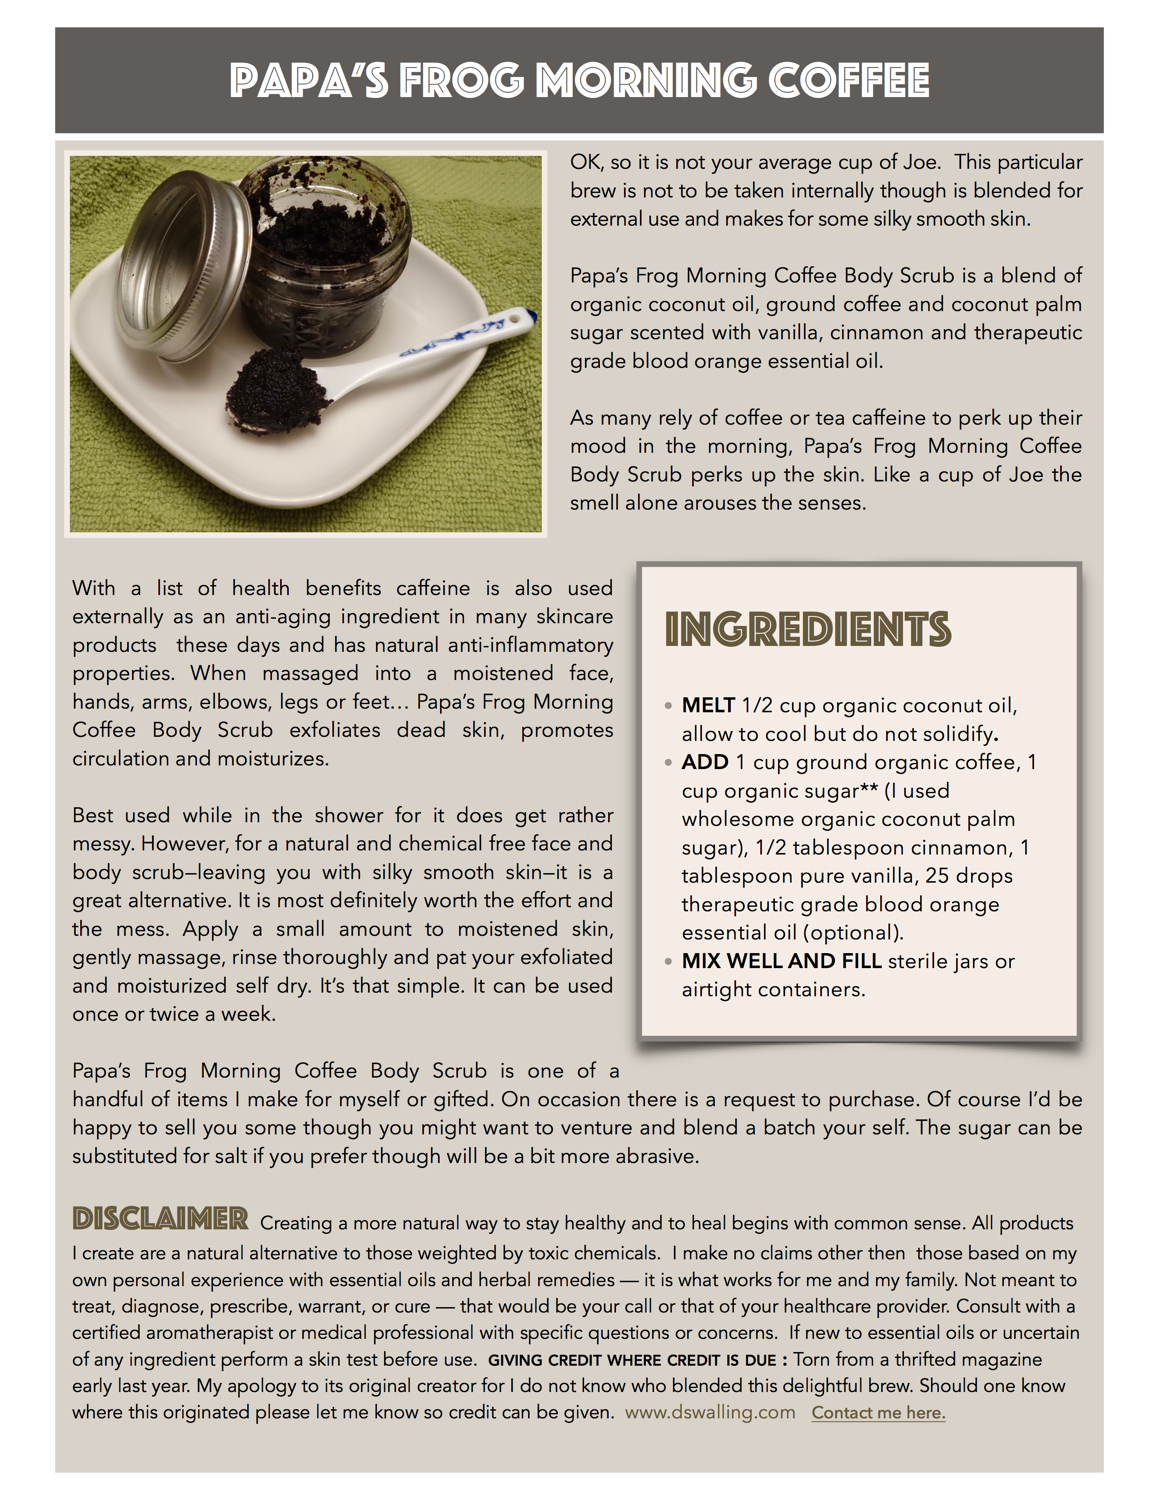 DSWpf-coffee-body-scrub-jpg